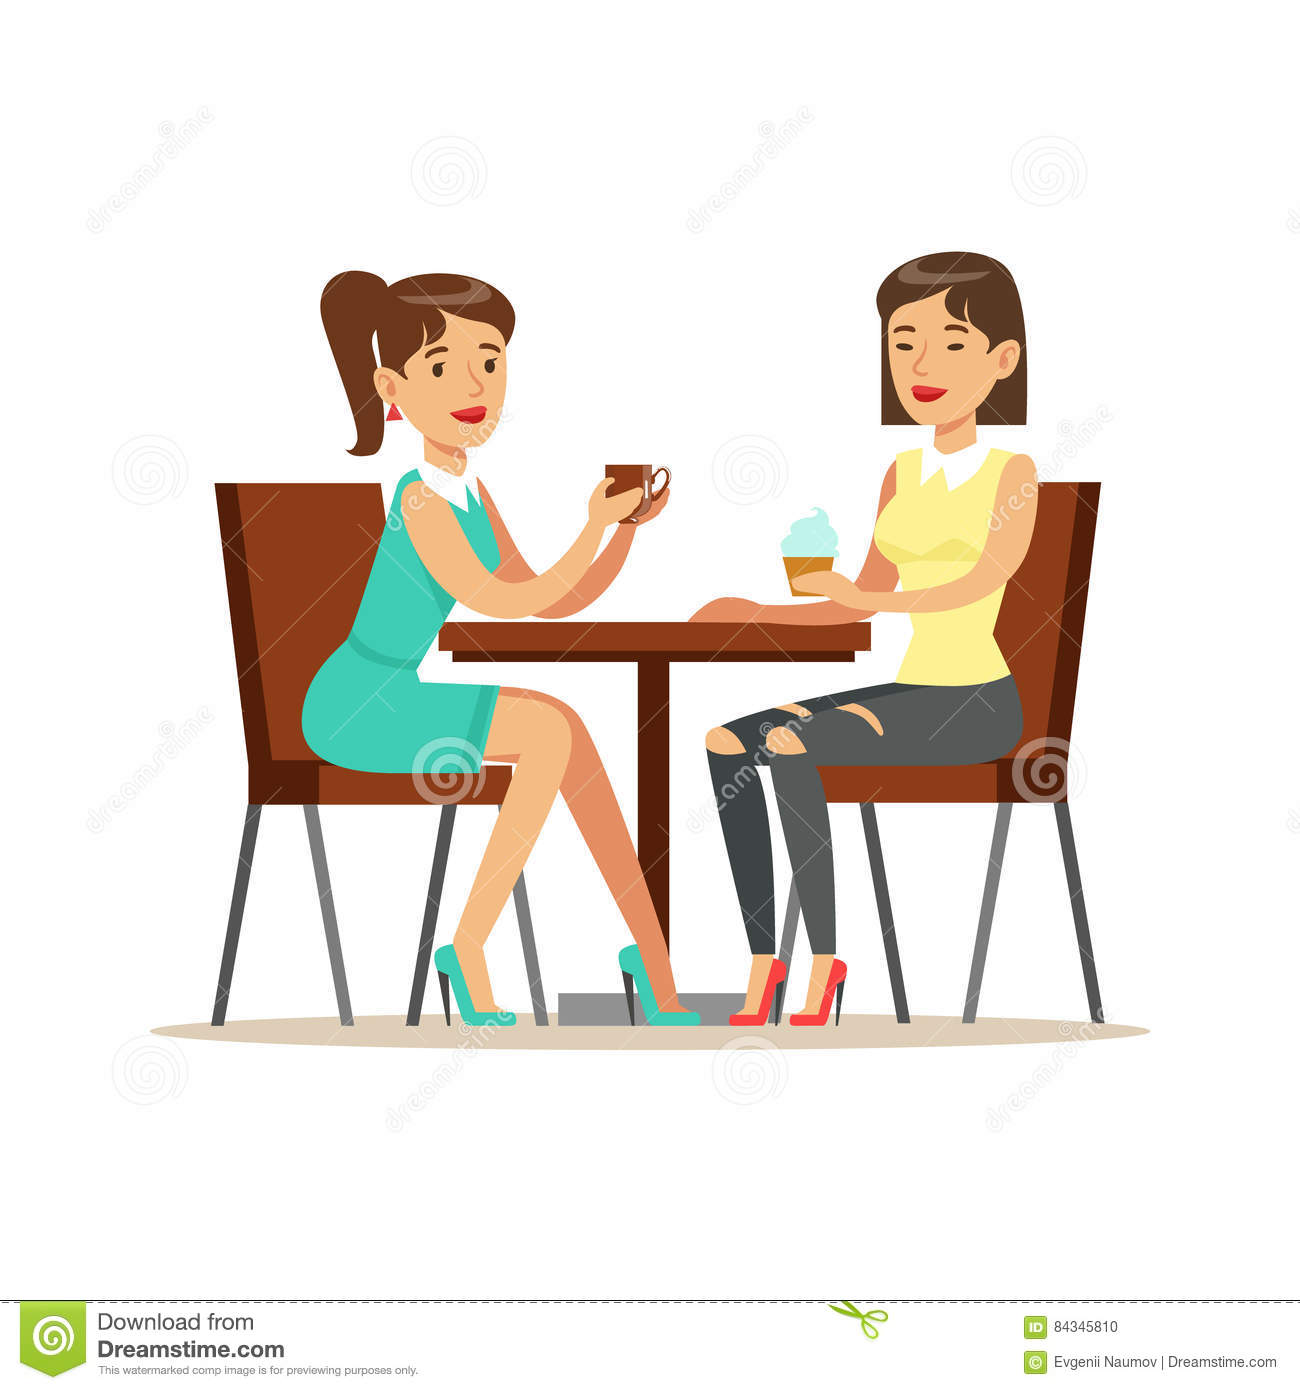 Happy Best Friends Drinking Coffee In Cafe, Part Of Friendship Illustration Series